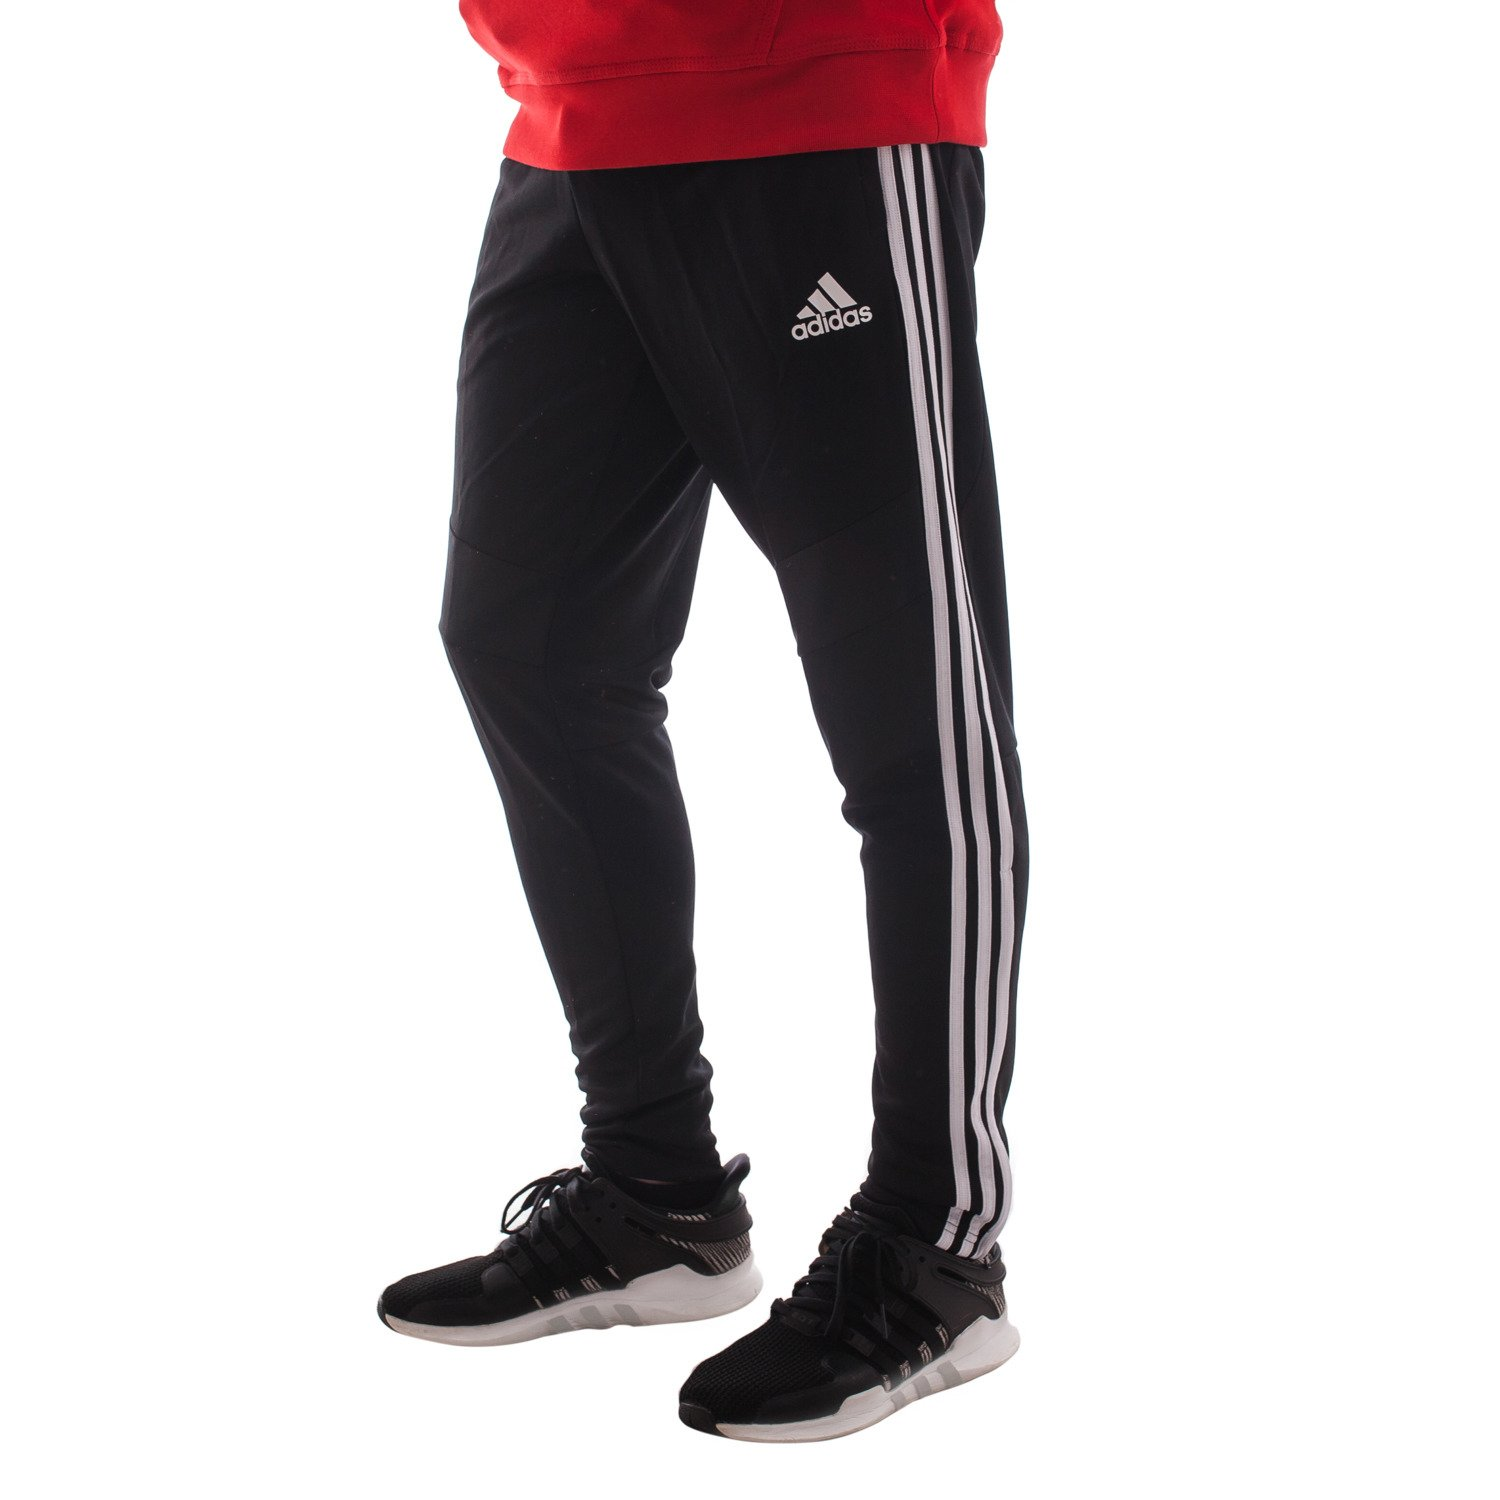 Dres adidas Tiro Training